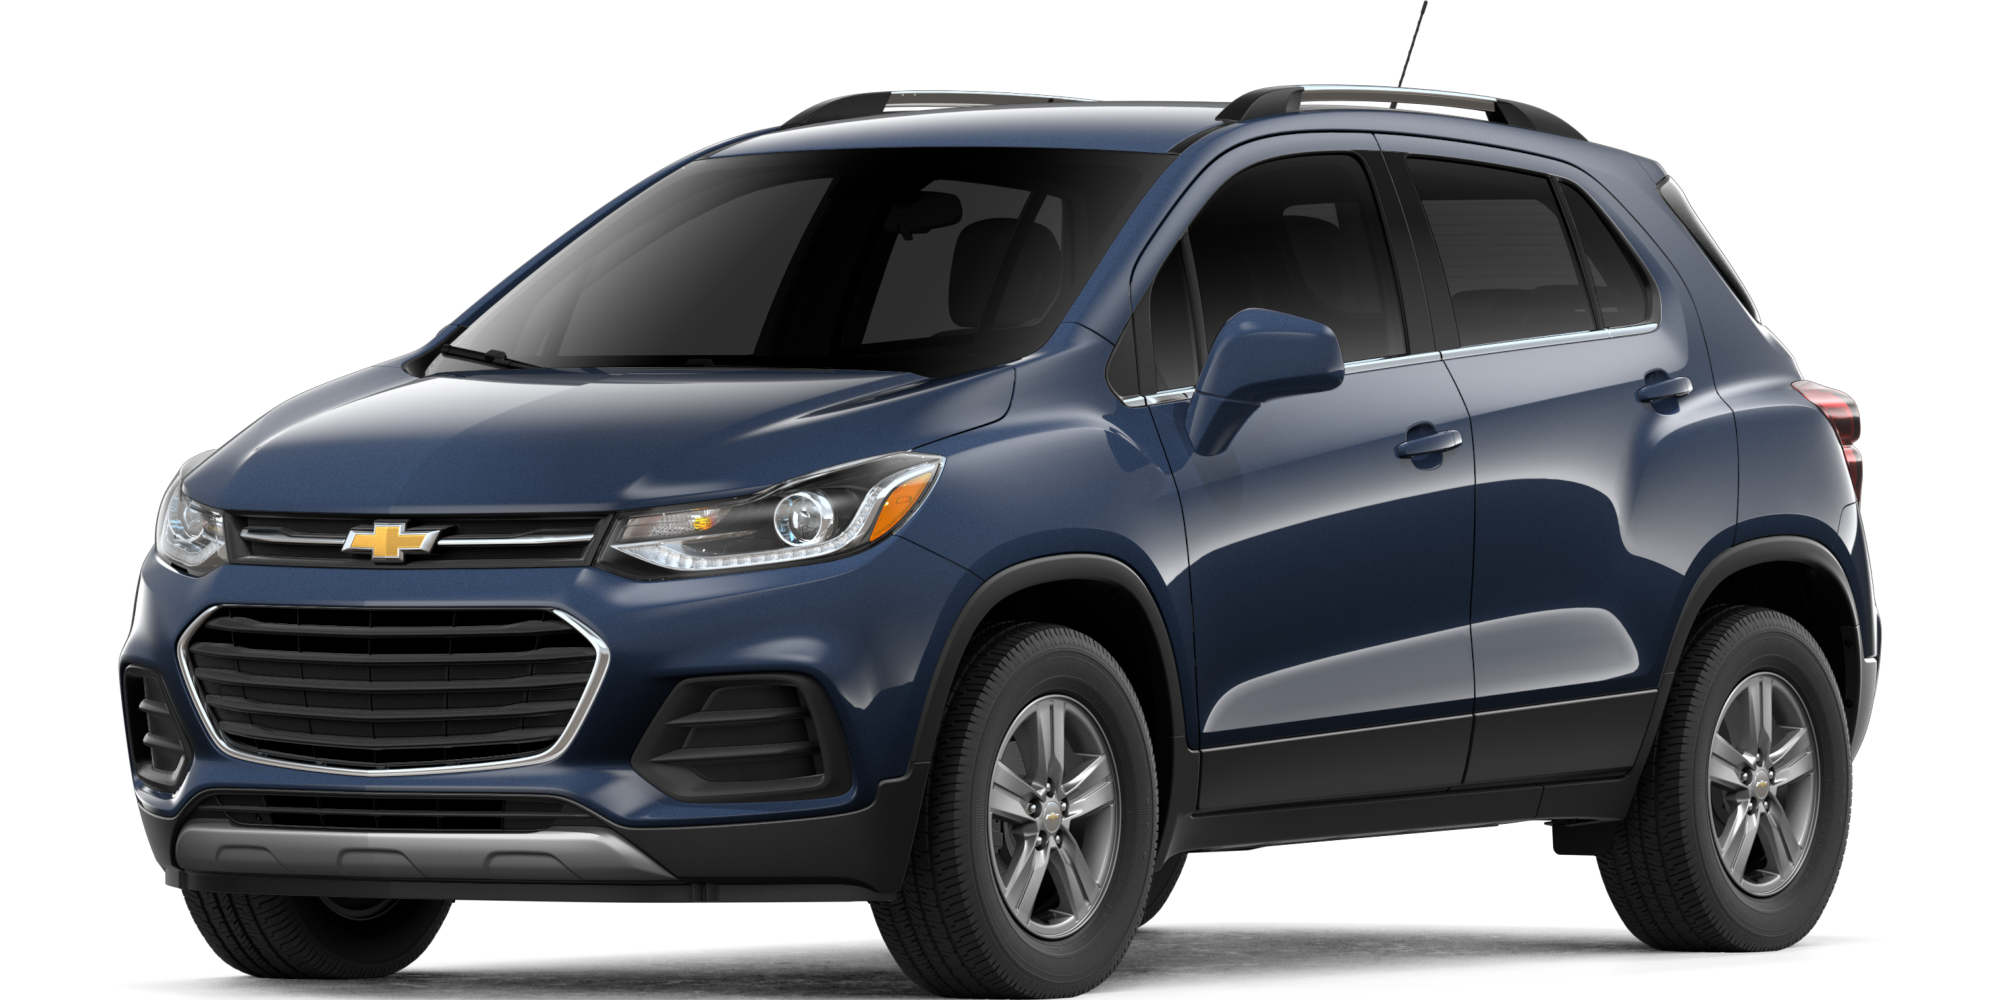 suv trax 2019 compacta crossover awd disponible. Black Bedroom Furniture Sets. Home Design Ideas